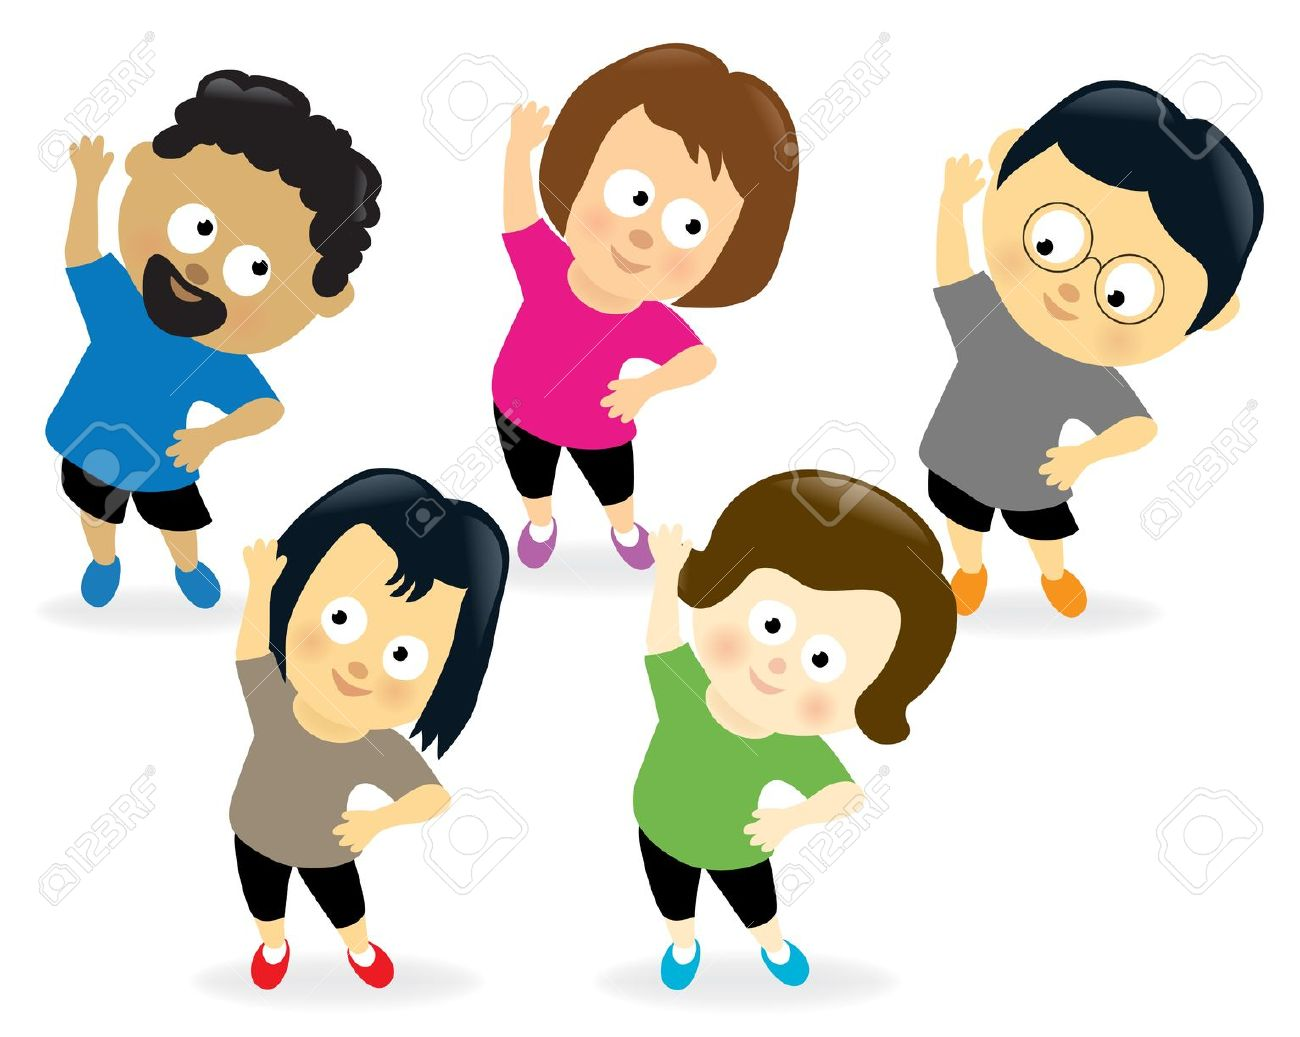 Free exercise clipart 2 » Clipart Station.